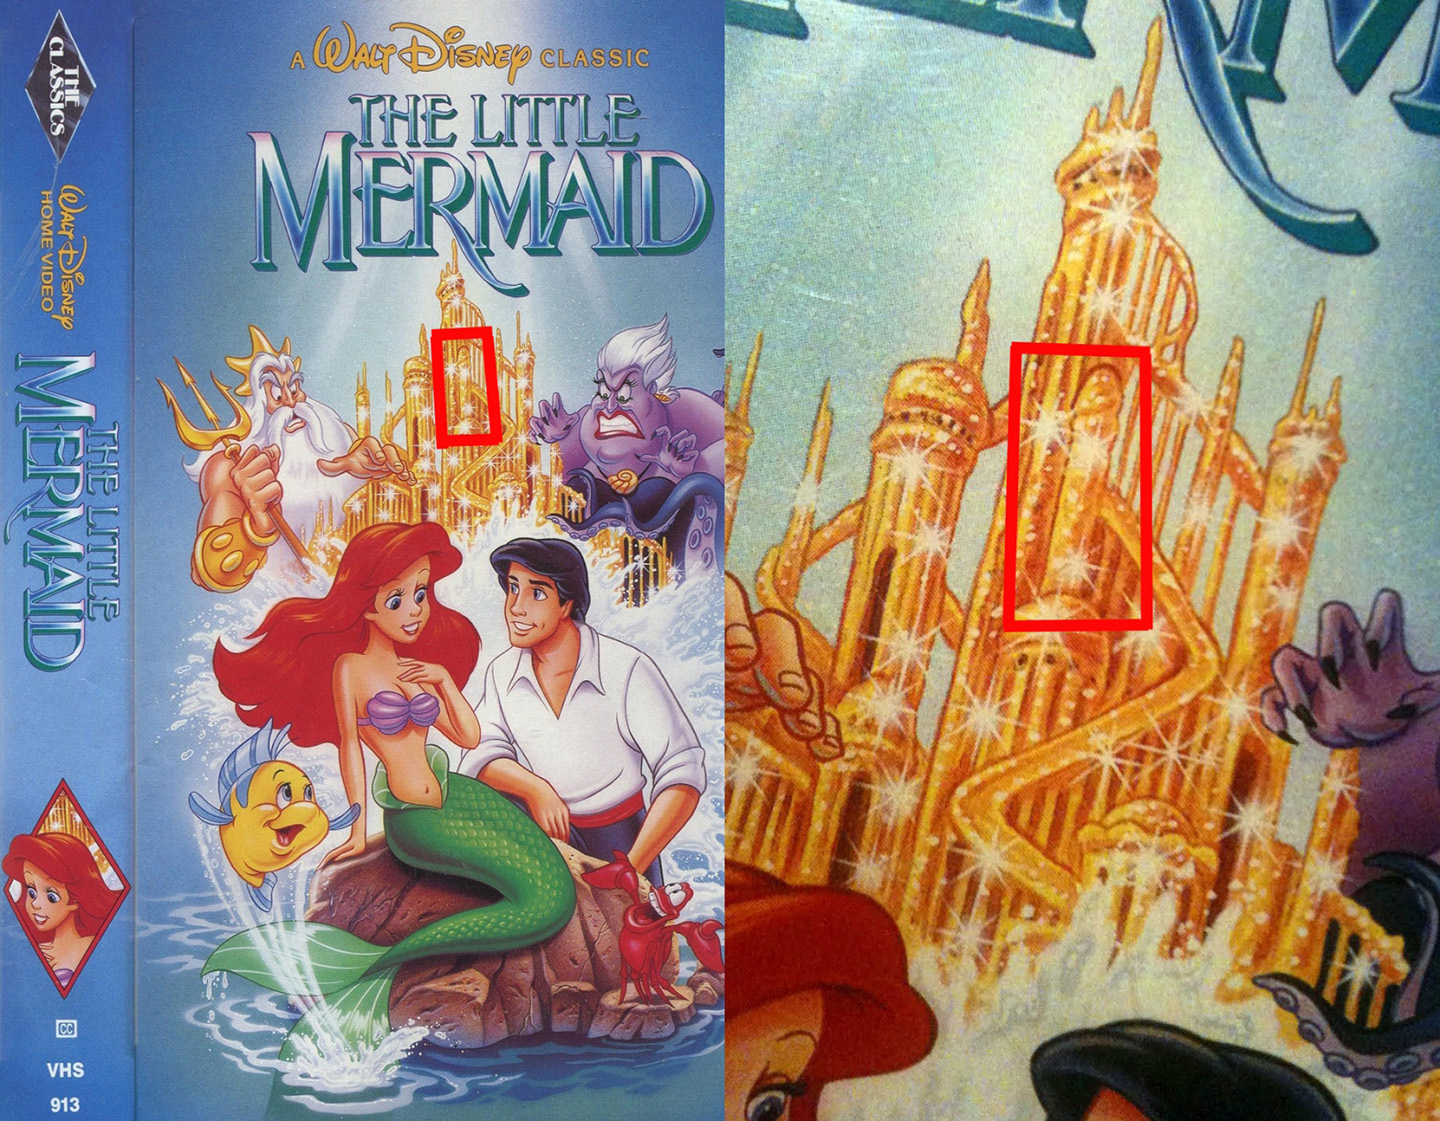 33 Dirty Hidden Messages In Cartoons That Will Ruin Your